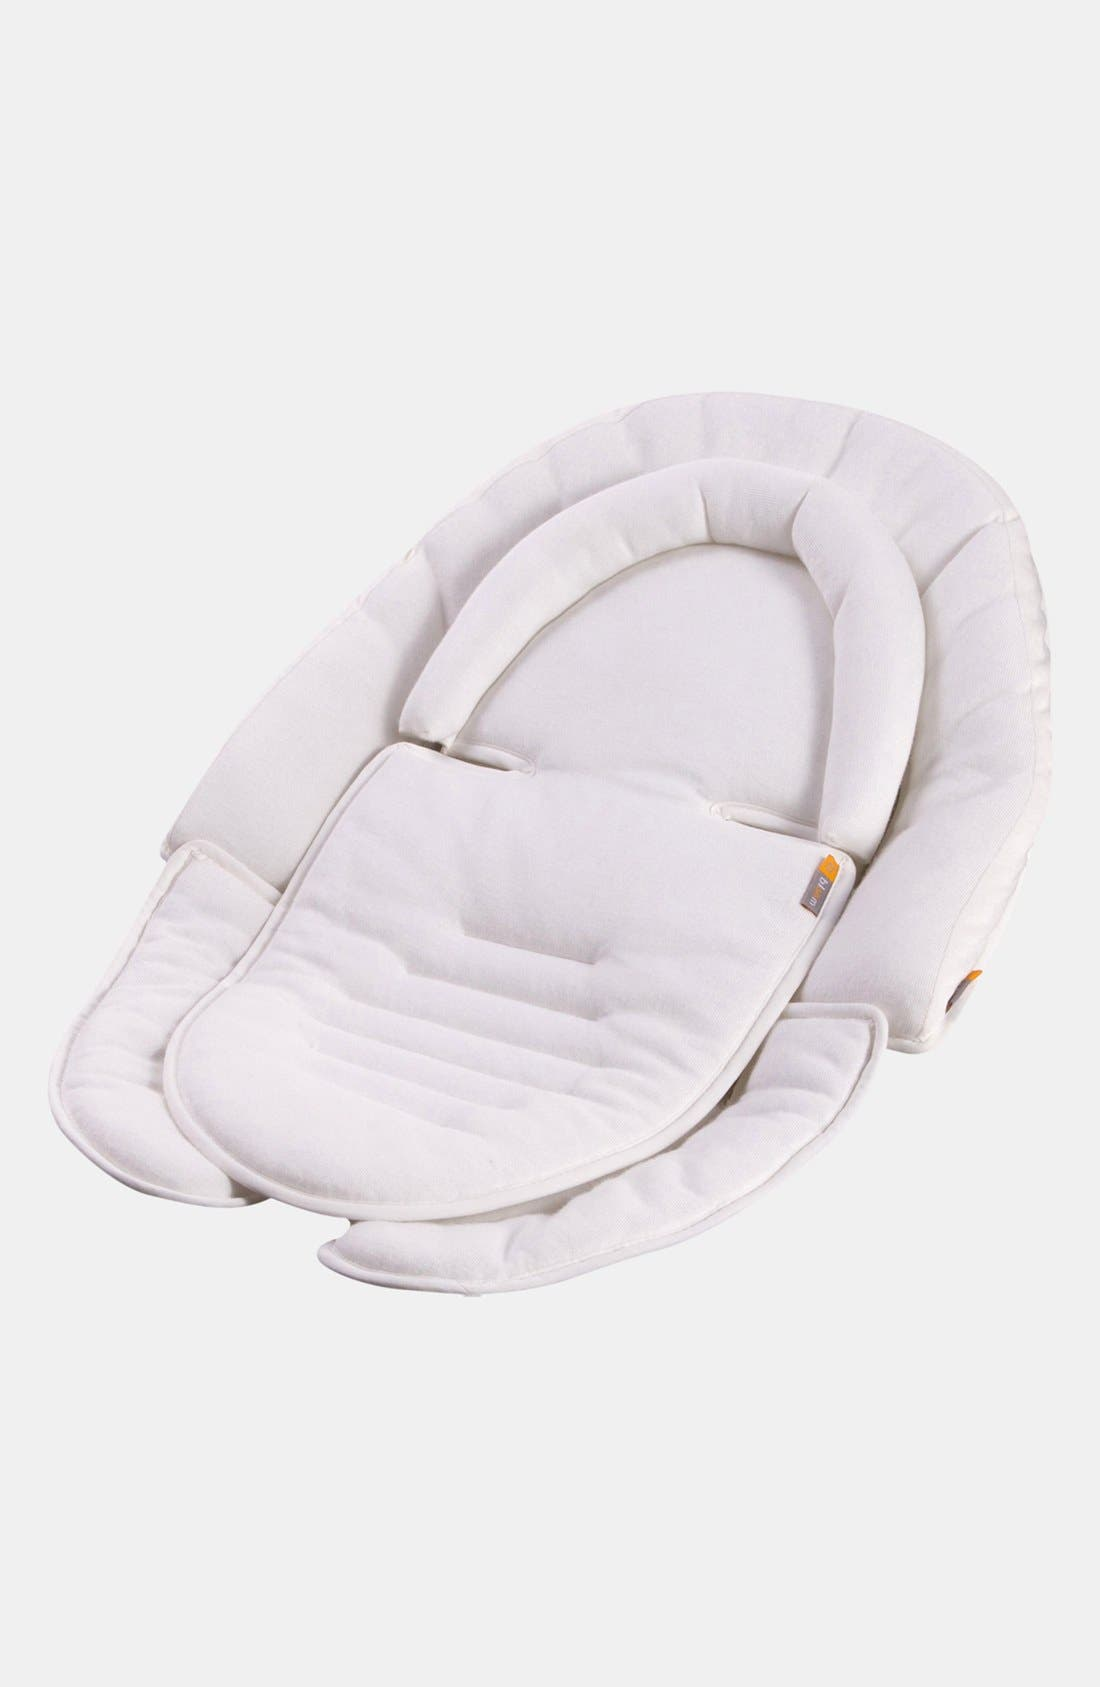 bloom Universal Snug for Strollers, Car Seats & Highchairs